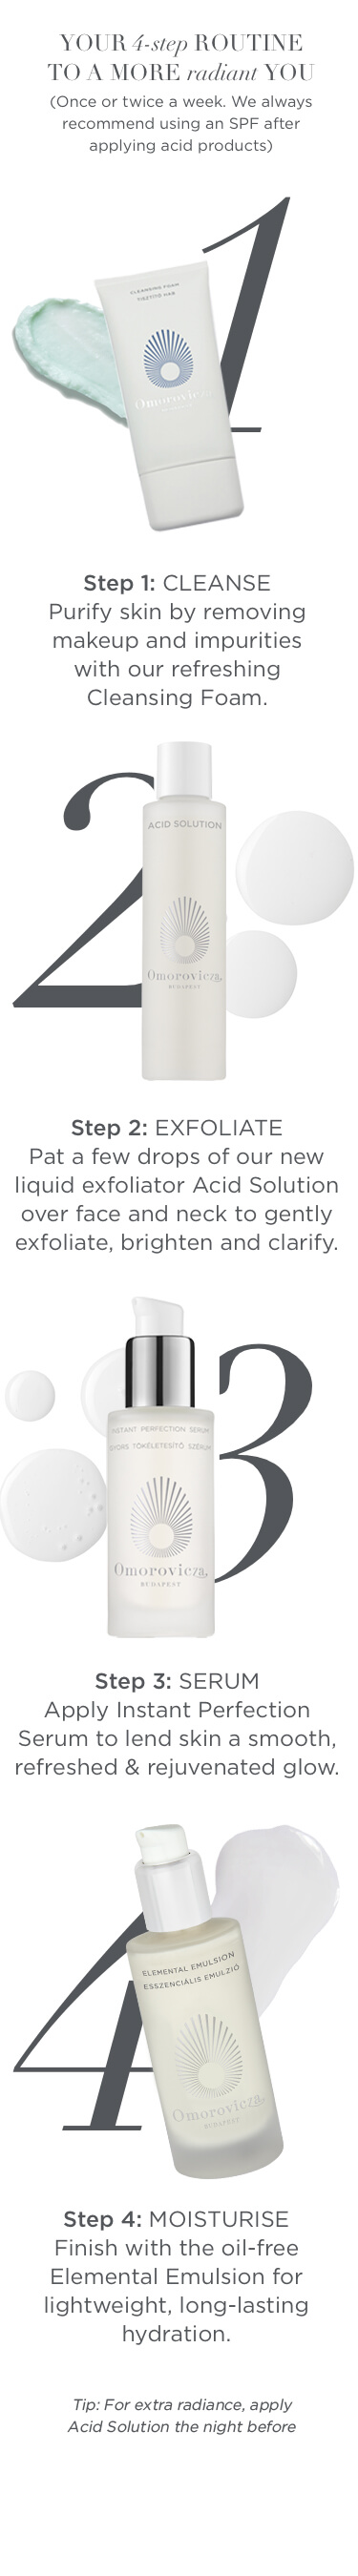 Acid solution skin care routine